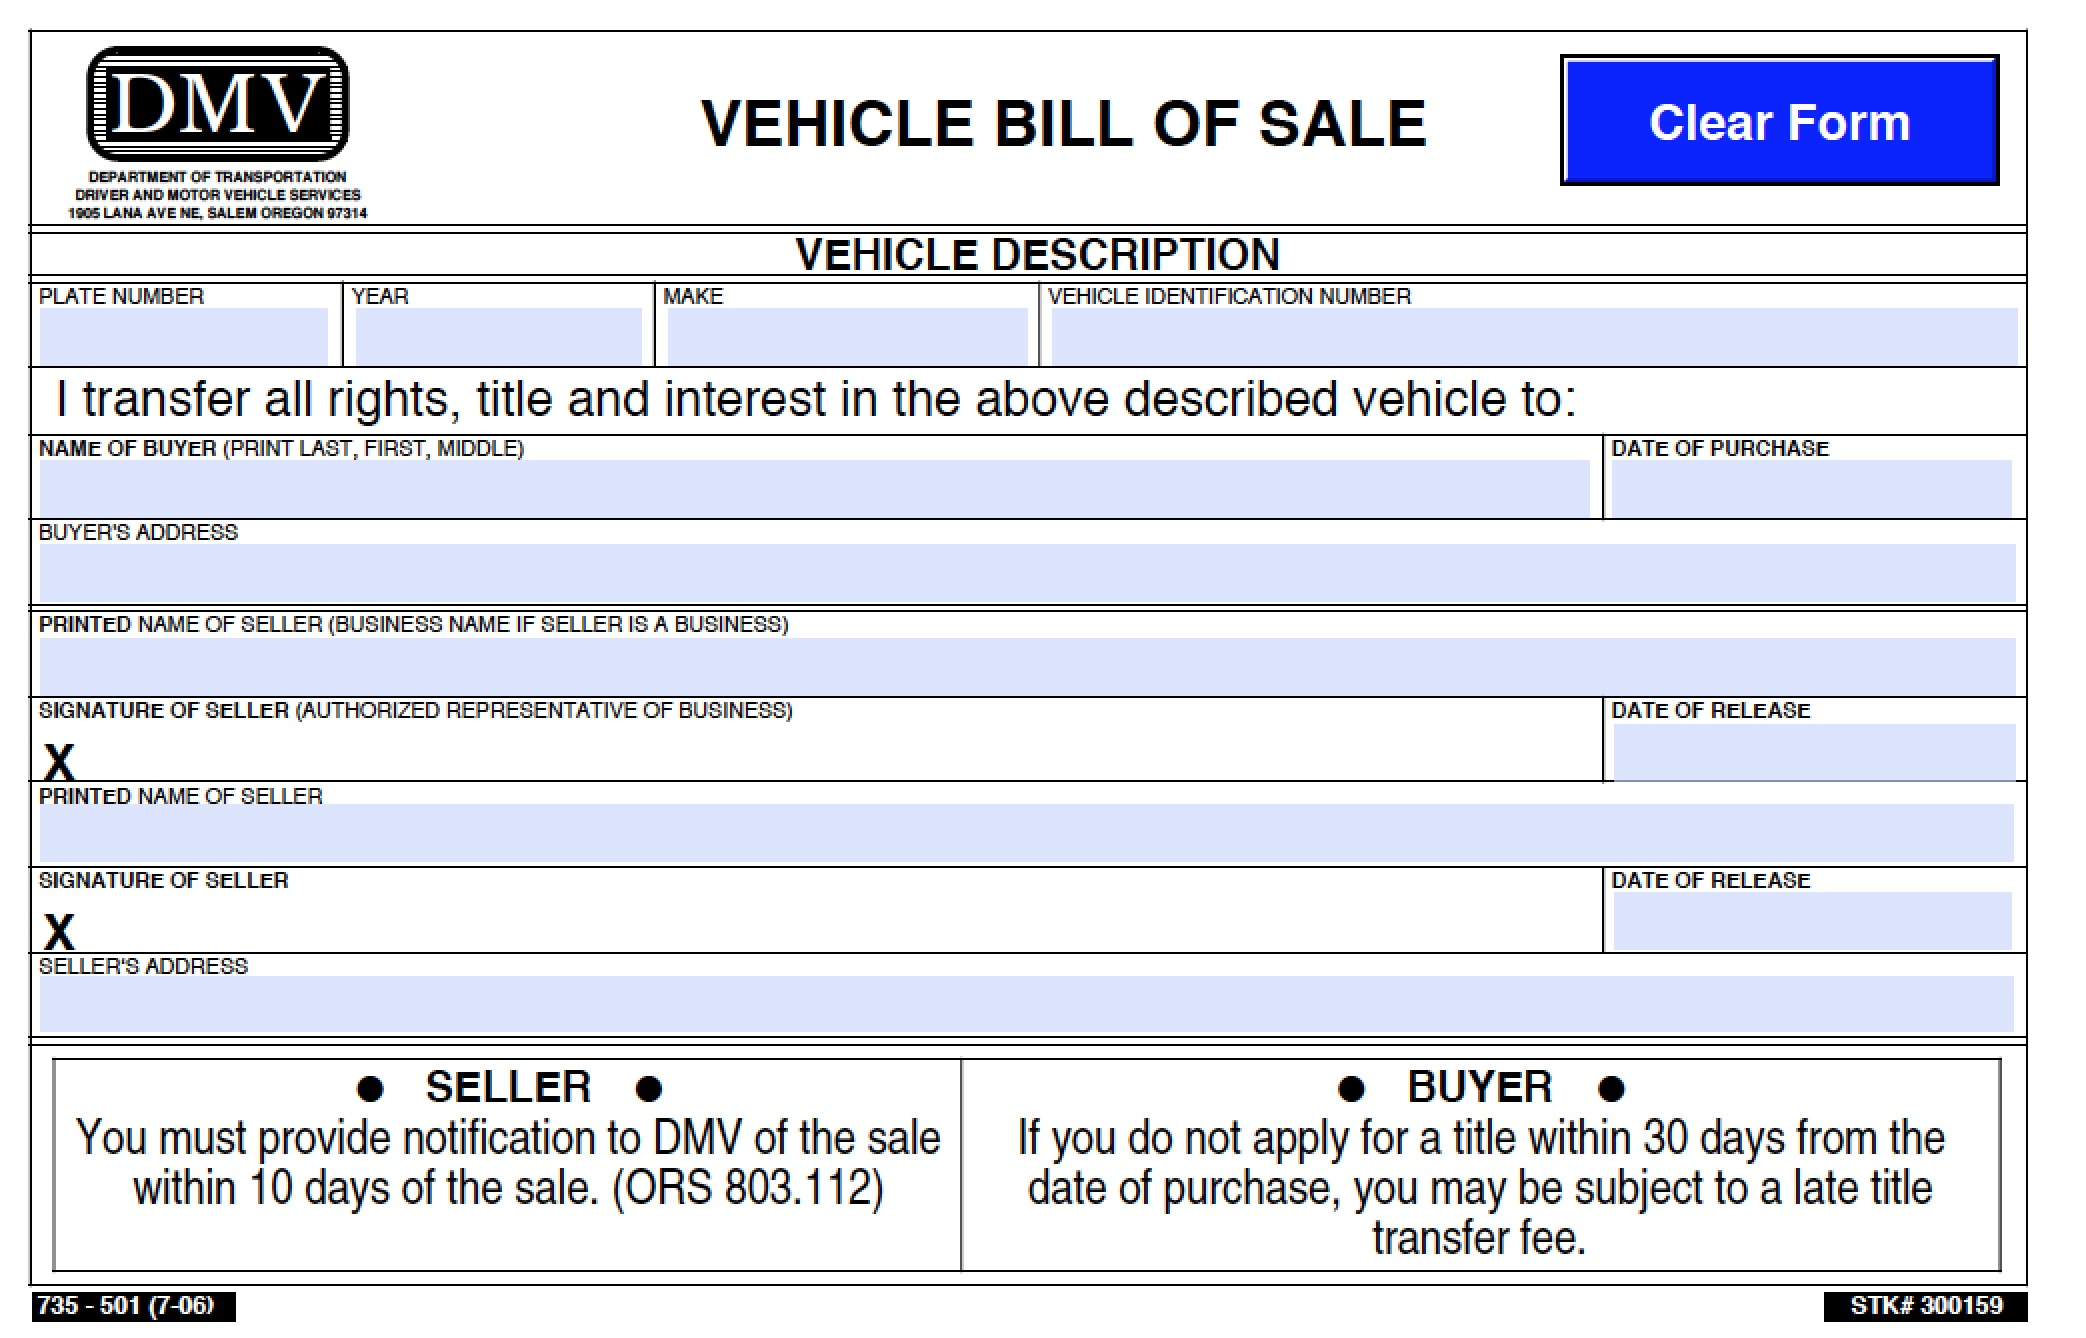 vehicle bill of sale oregon Free Oregon DMV (Vehicle) Bill of Sale | 501 Form | PDF | Word (.doc)